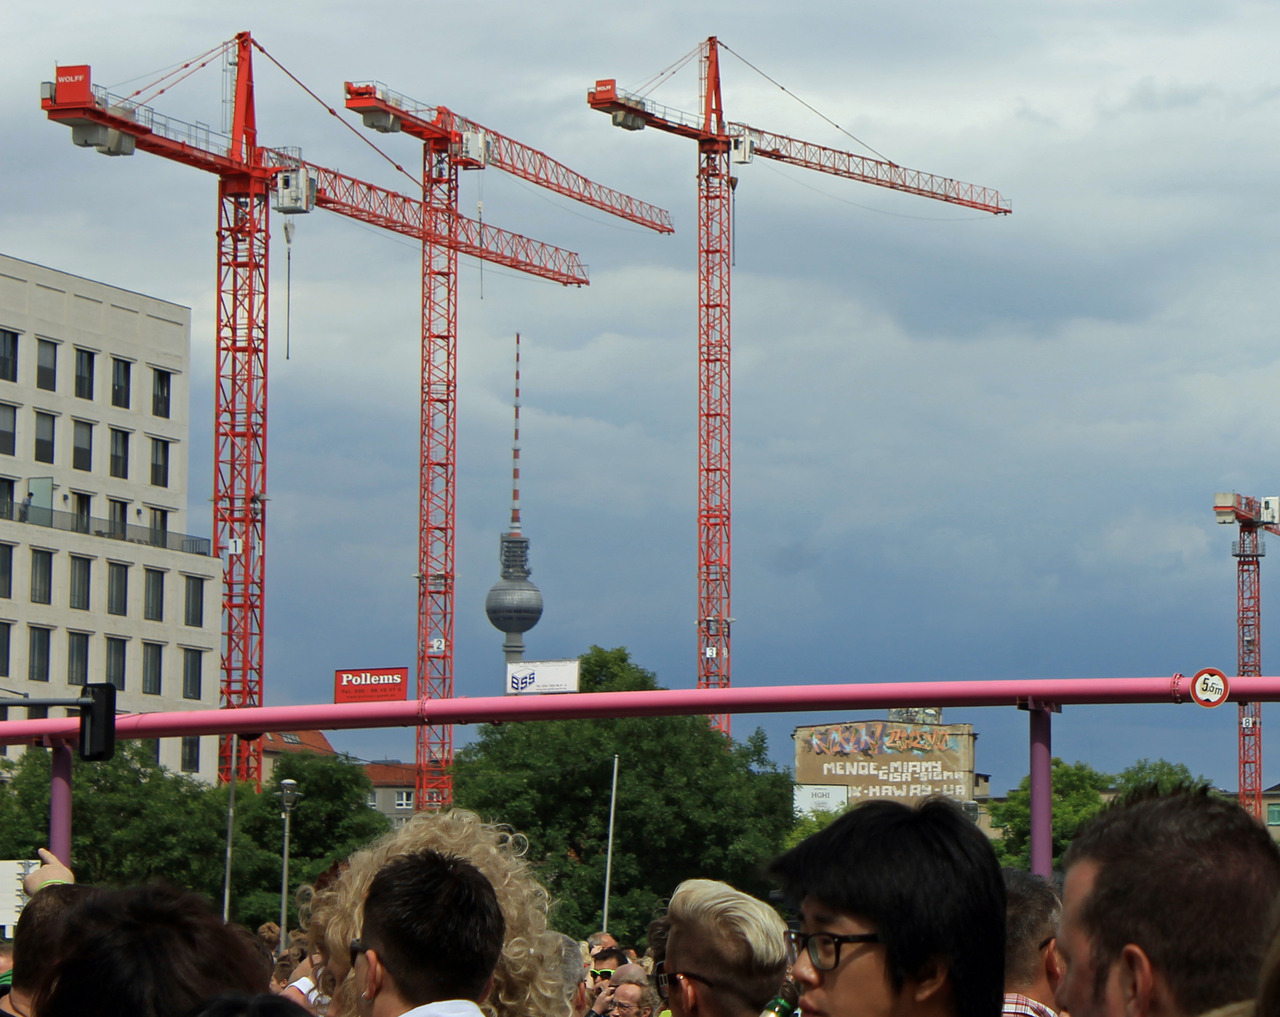 Cranes in Berlin. Source: gin+gelato